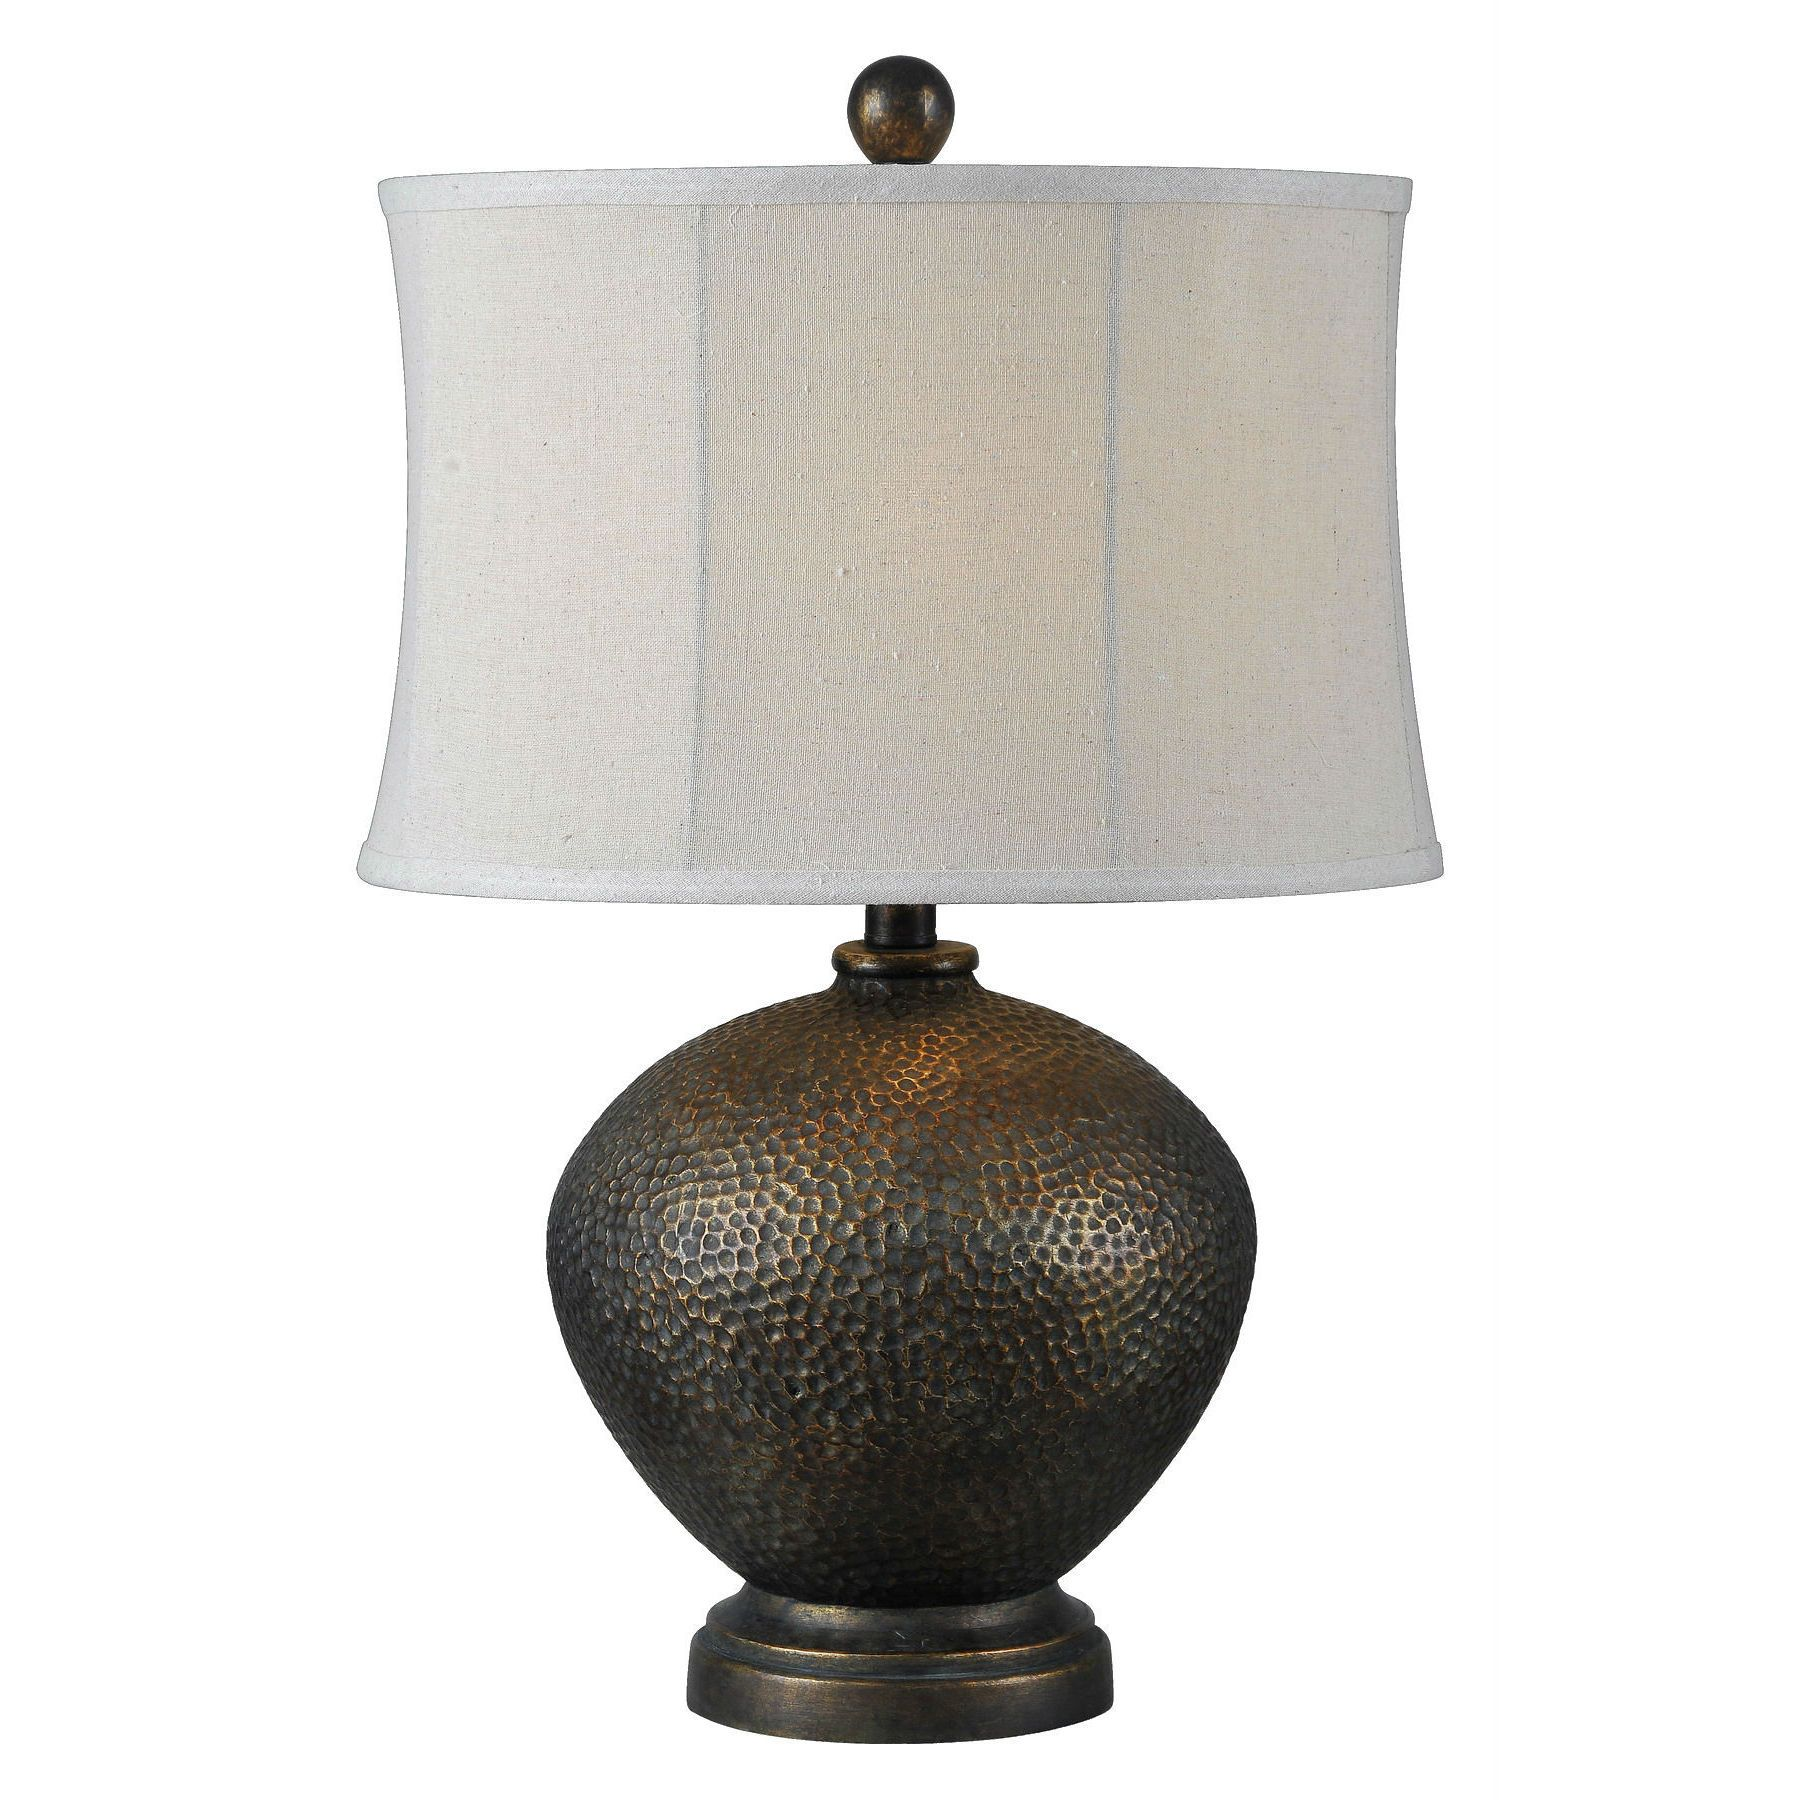 Miller Table Lamp Bronze Table Lamp Hammered Table Lamps Table